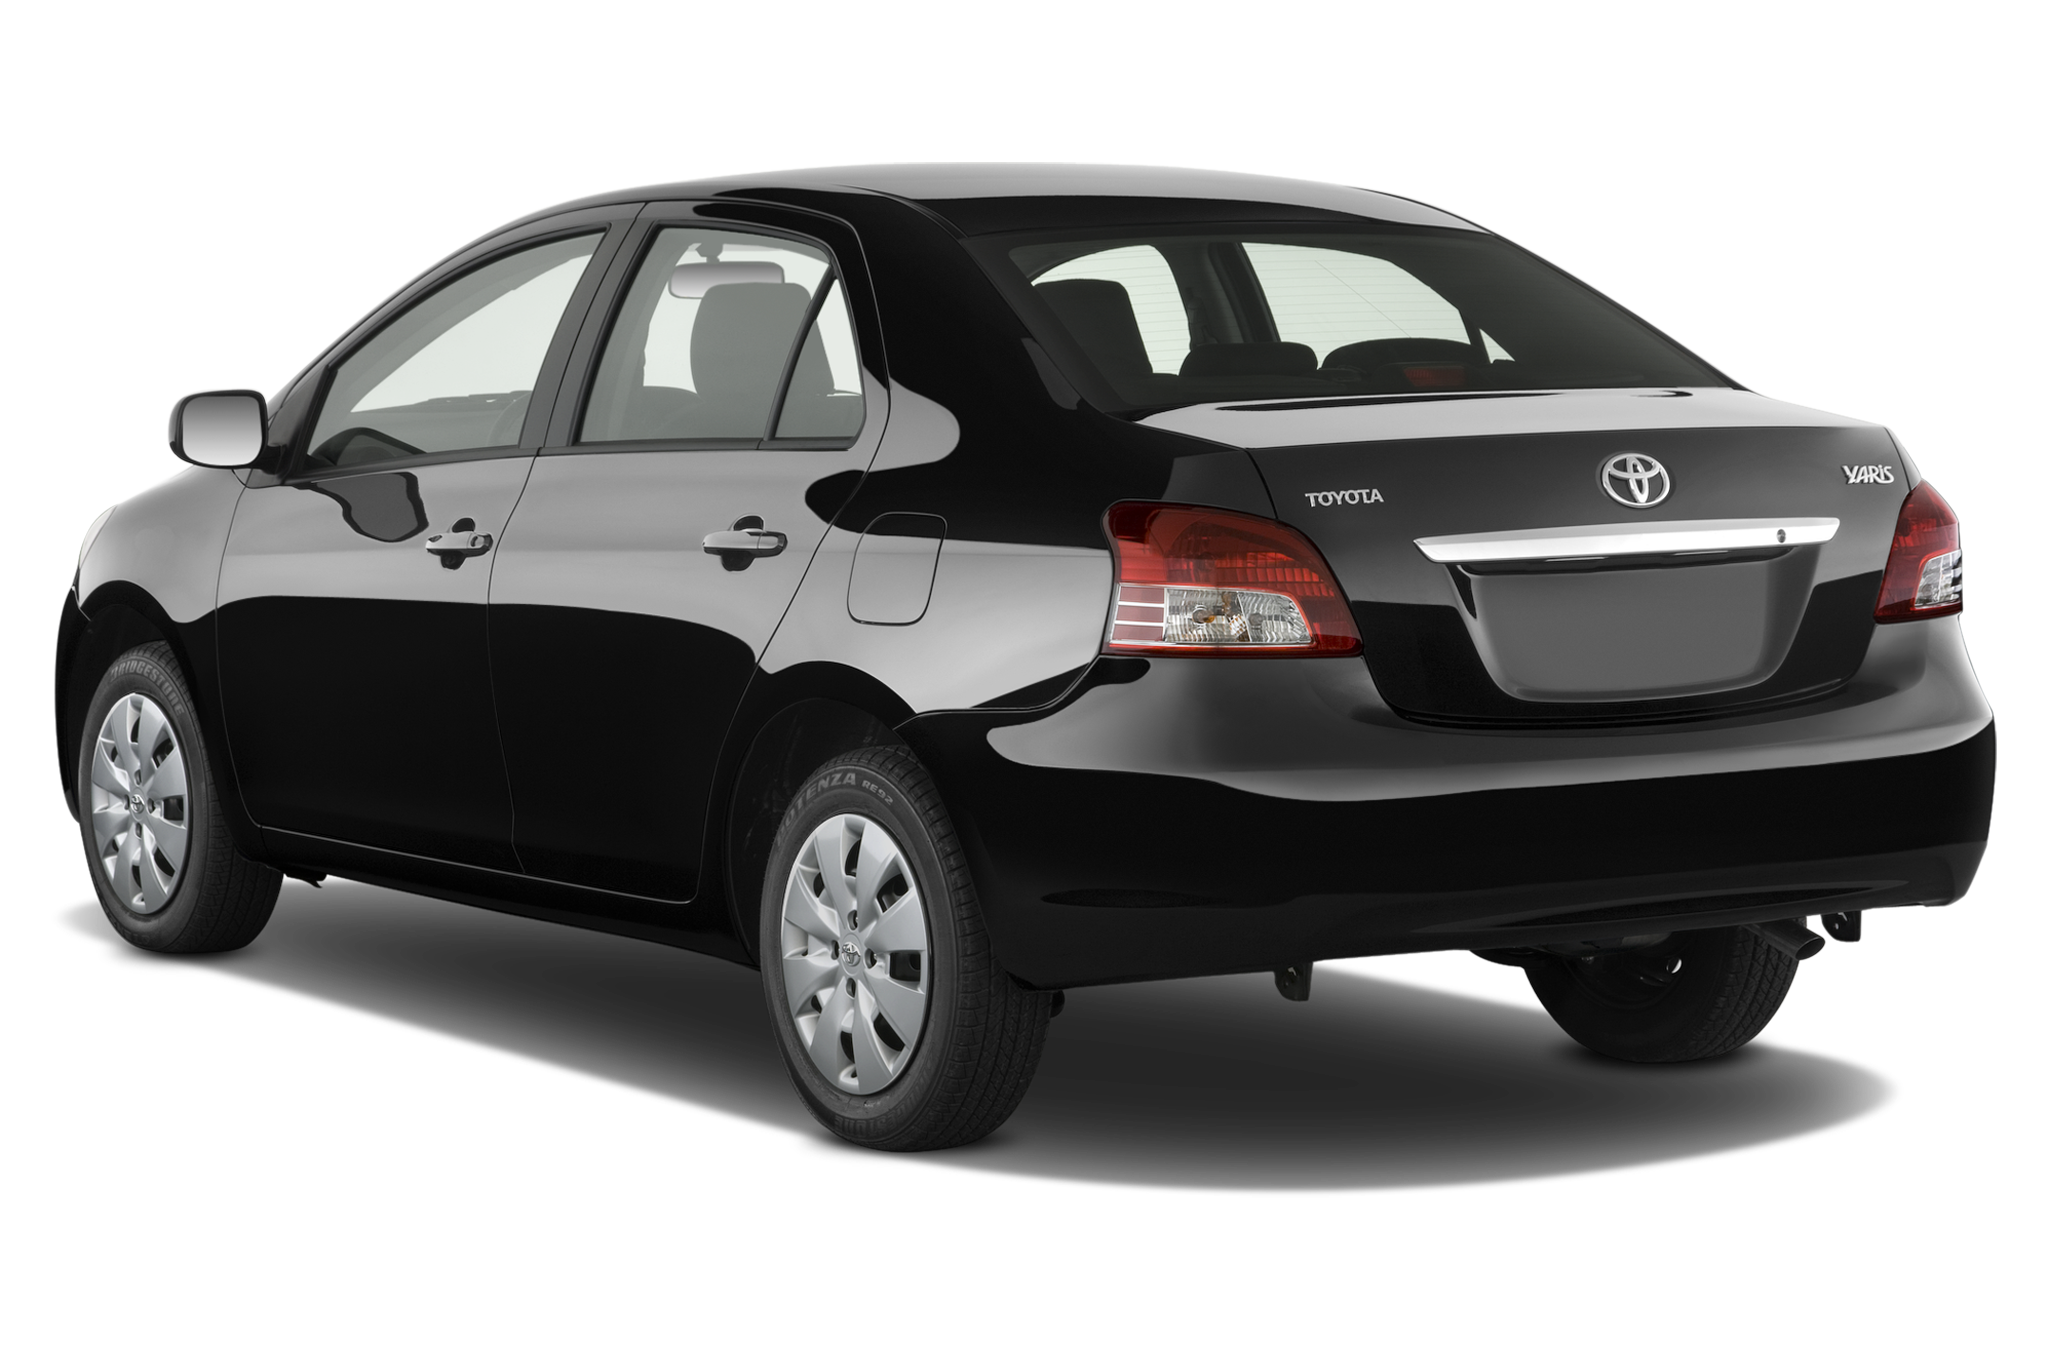 Rumored Next Gen Toyota Yaris To Move Up In Size